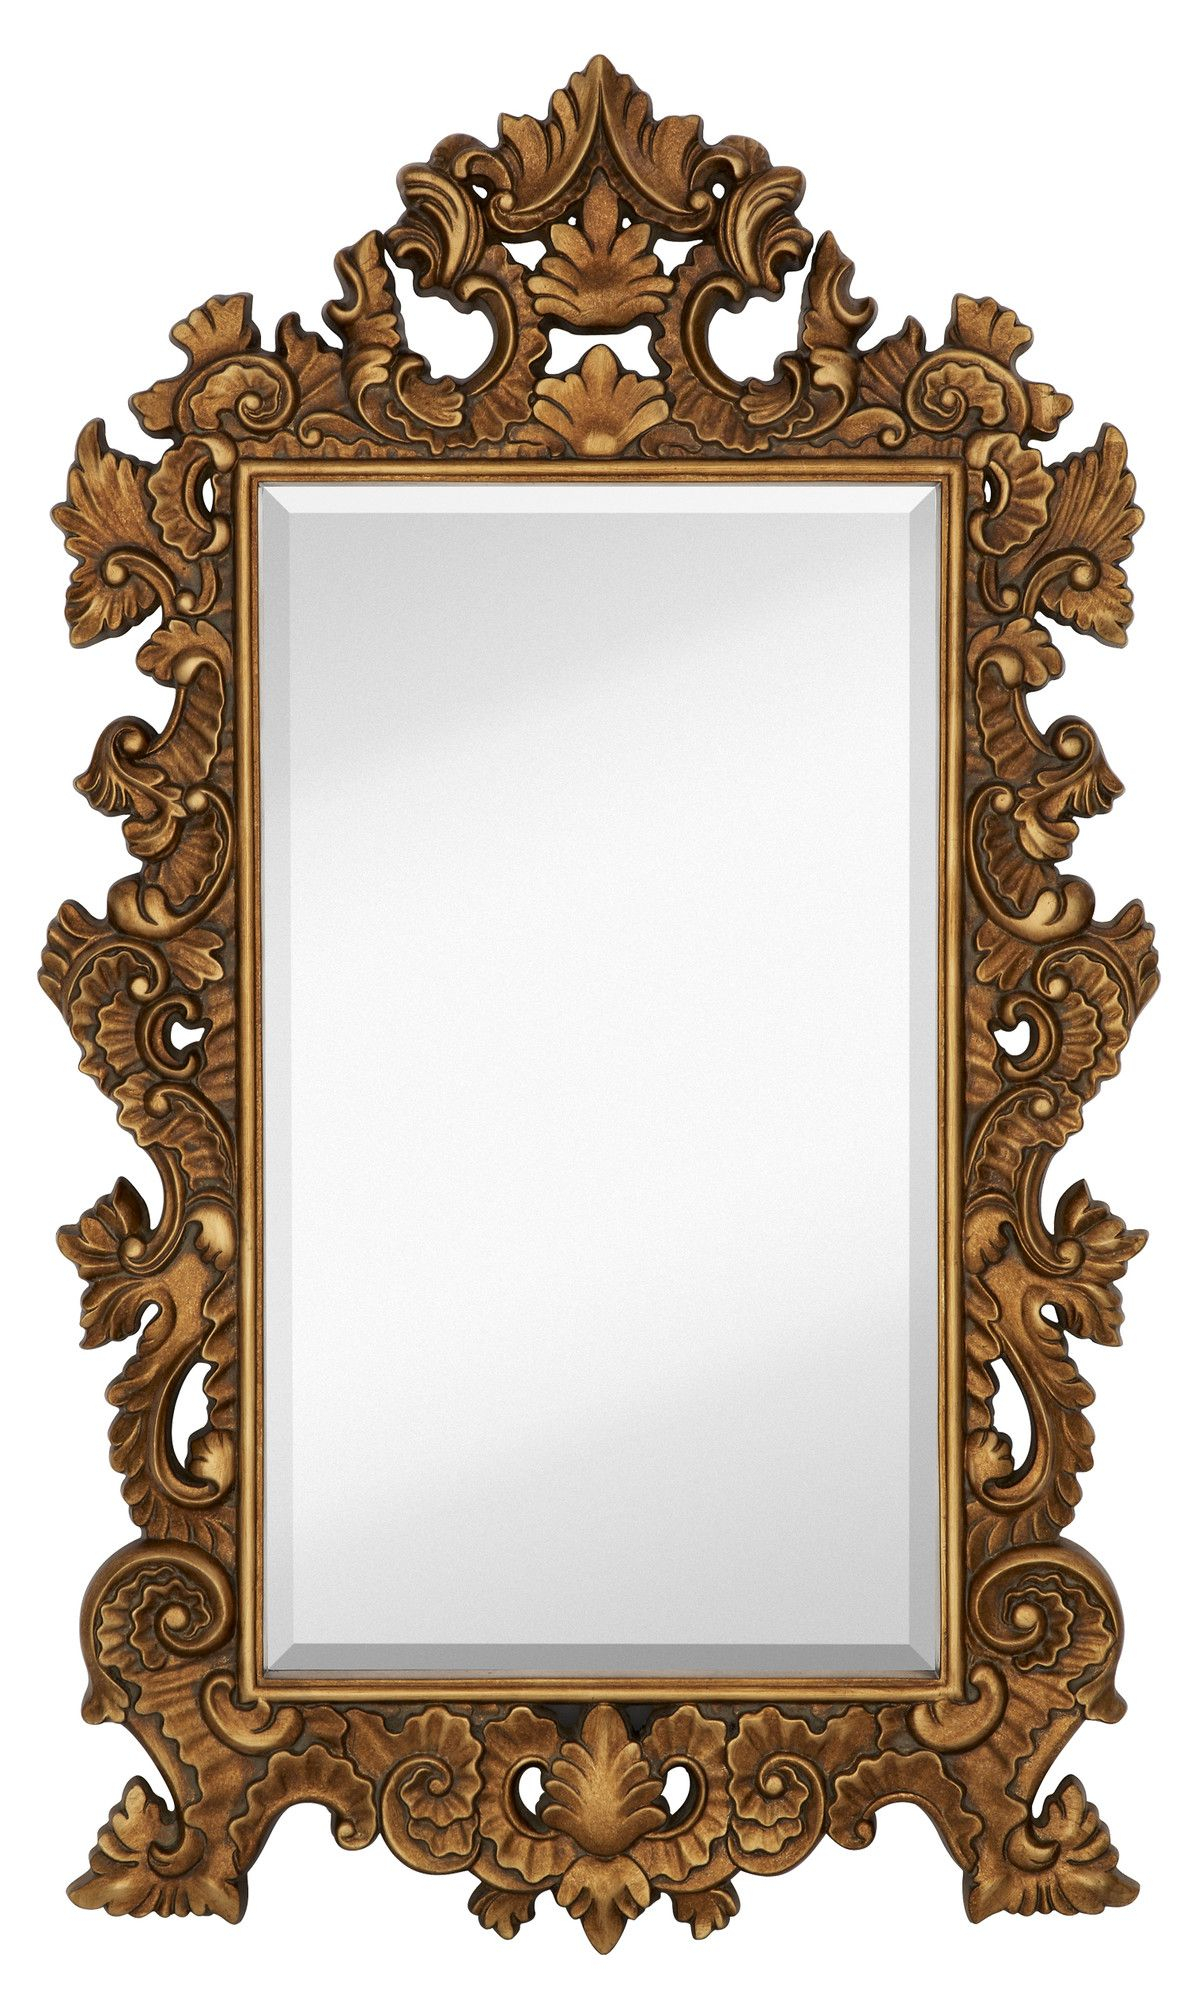 Traditional Beveled Accent Mirror | Products | Mirror, Frame Throughout Traditional Beveled Accent Mirrors (View 17 of 30)